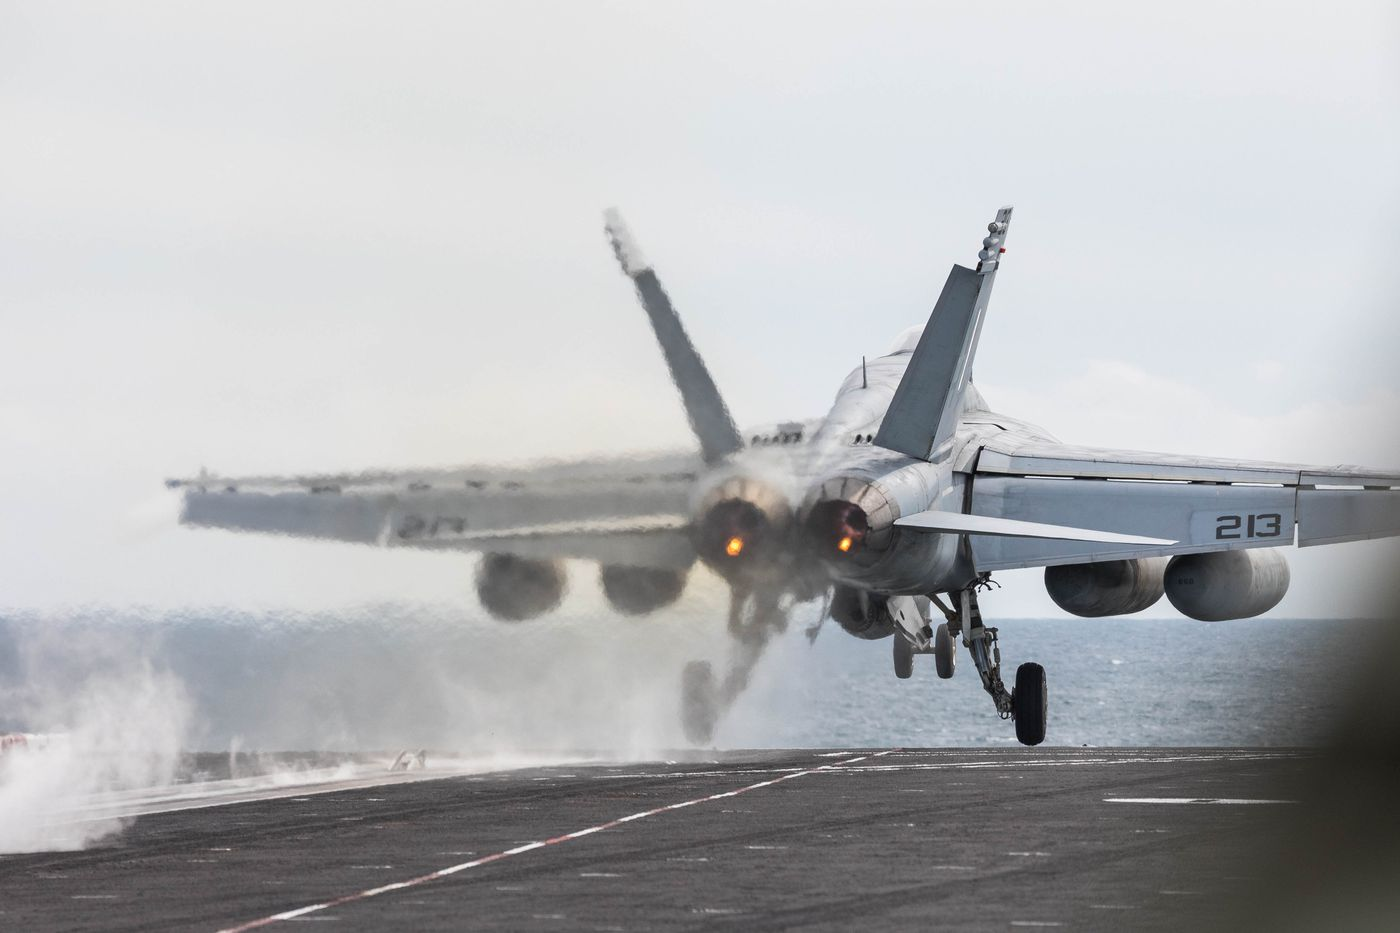 A F/A-18 Super Hornet takes off on Wednesday from the USS Theodore Roosevelt Nimitz-class aircraft carrier in the Gulf of Alaska south of Seward. The Roosevelt can carry over 60 aircraft at once, including fighter jets, airborne command and control aircraft, helicopters and cargo aircraft. (Loren Holmes / ADN)